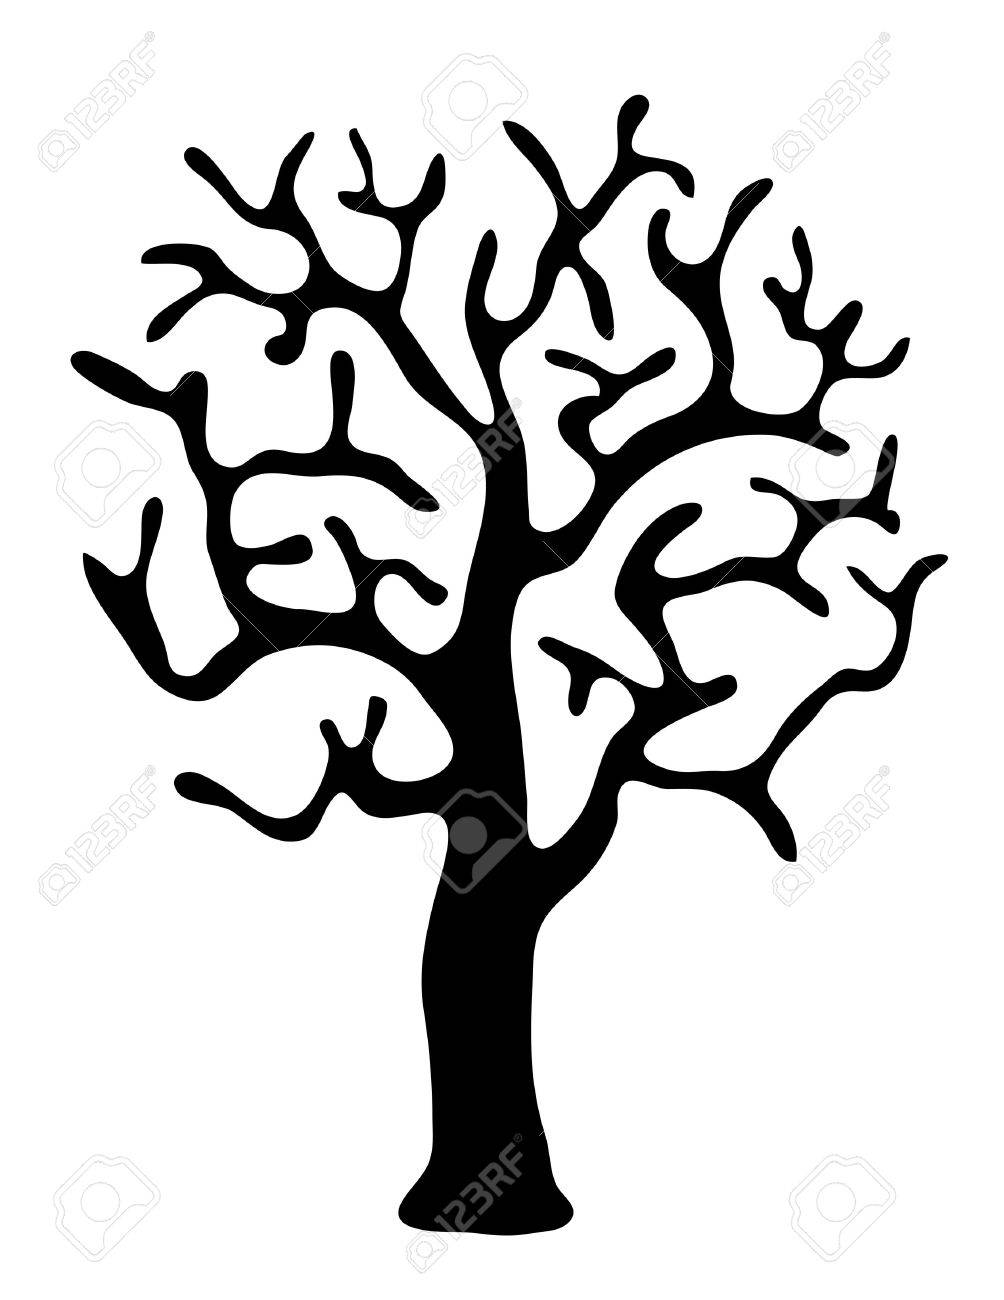 Black Tree Without Leaves On White Background Vector Illustration